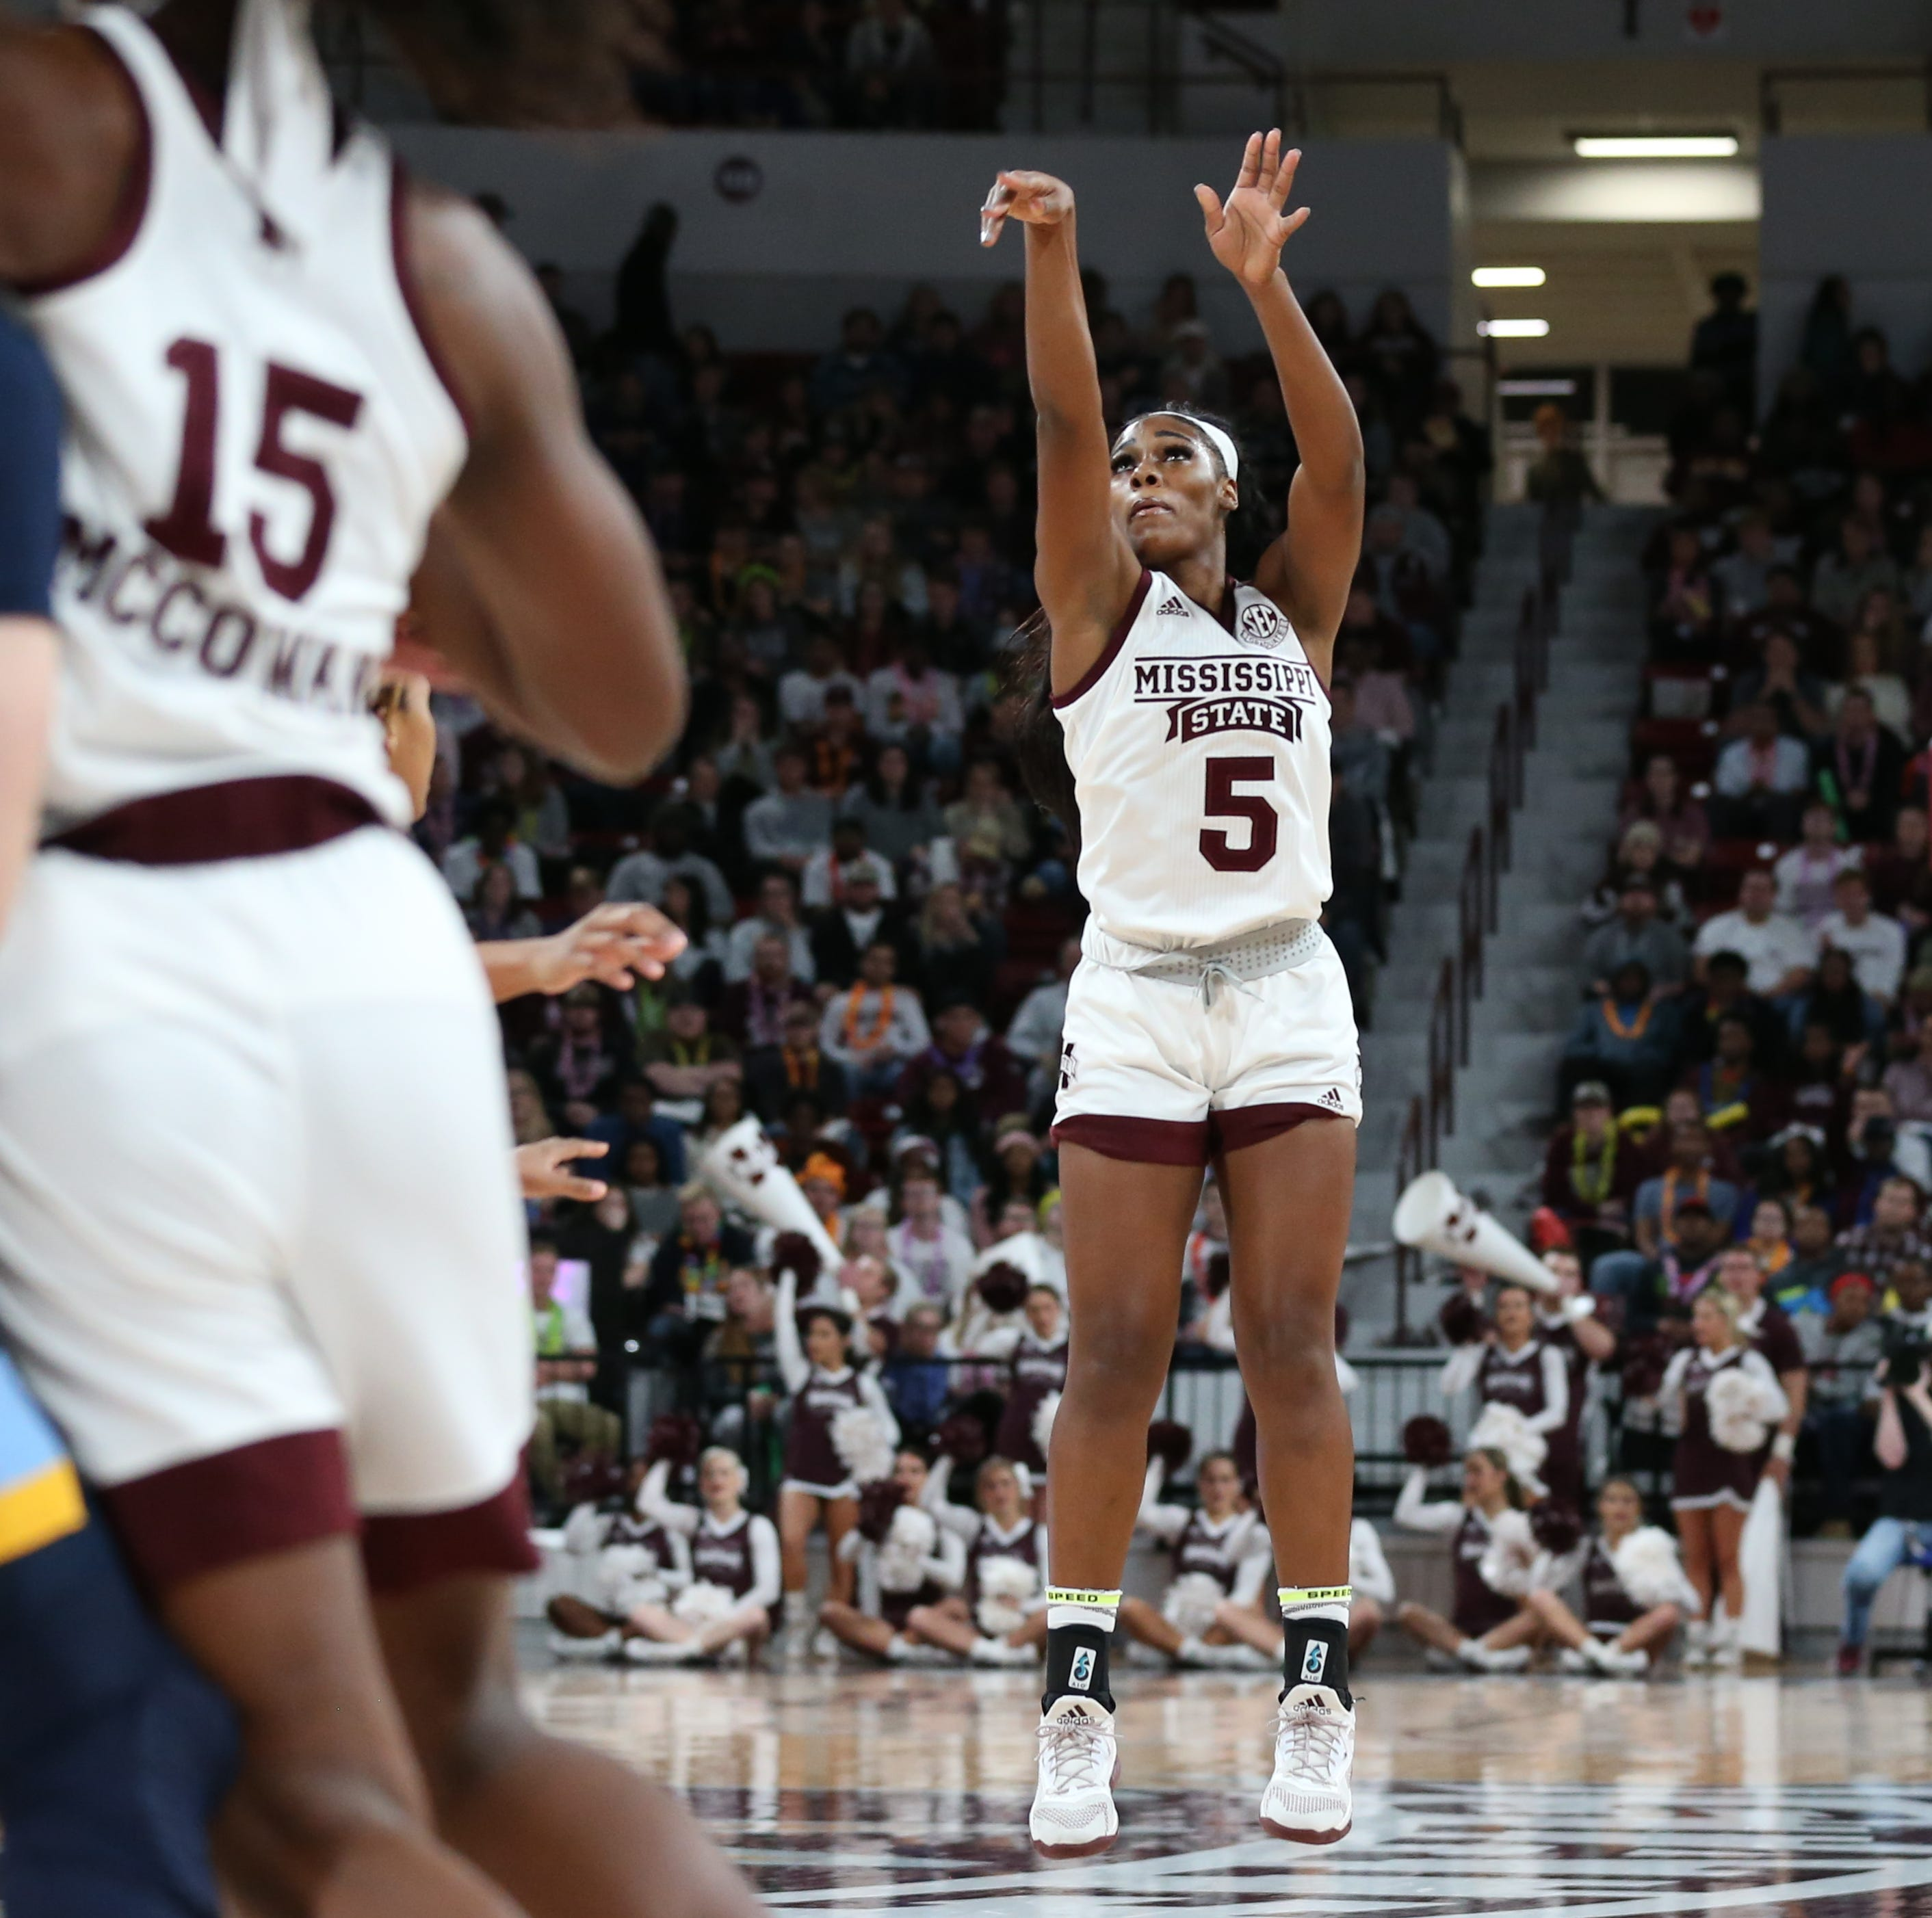 'We're good': Mississippi State stays the course in dramatic win over Marquette